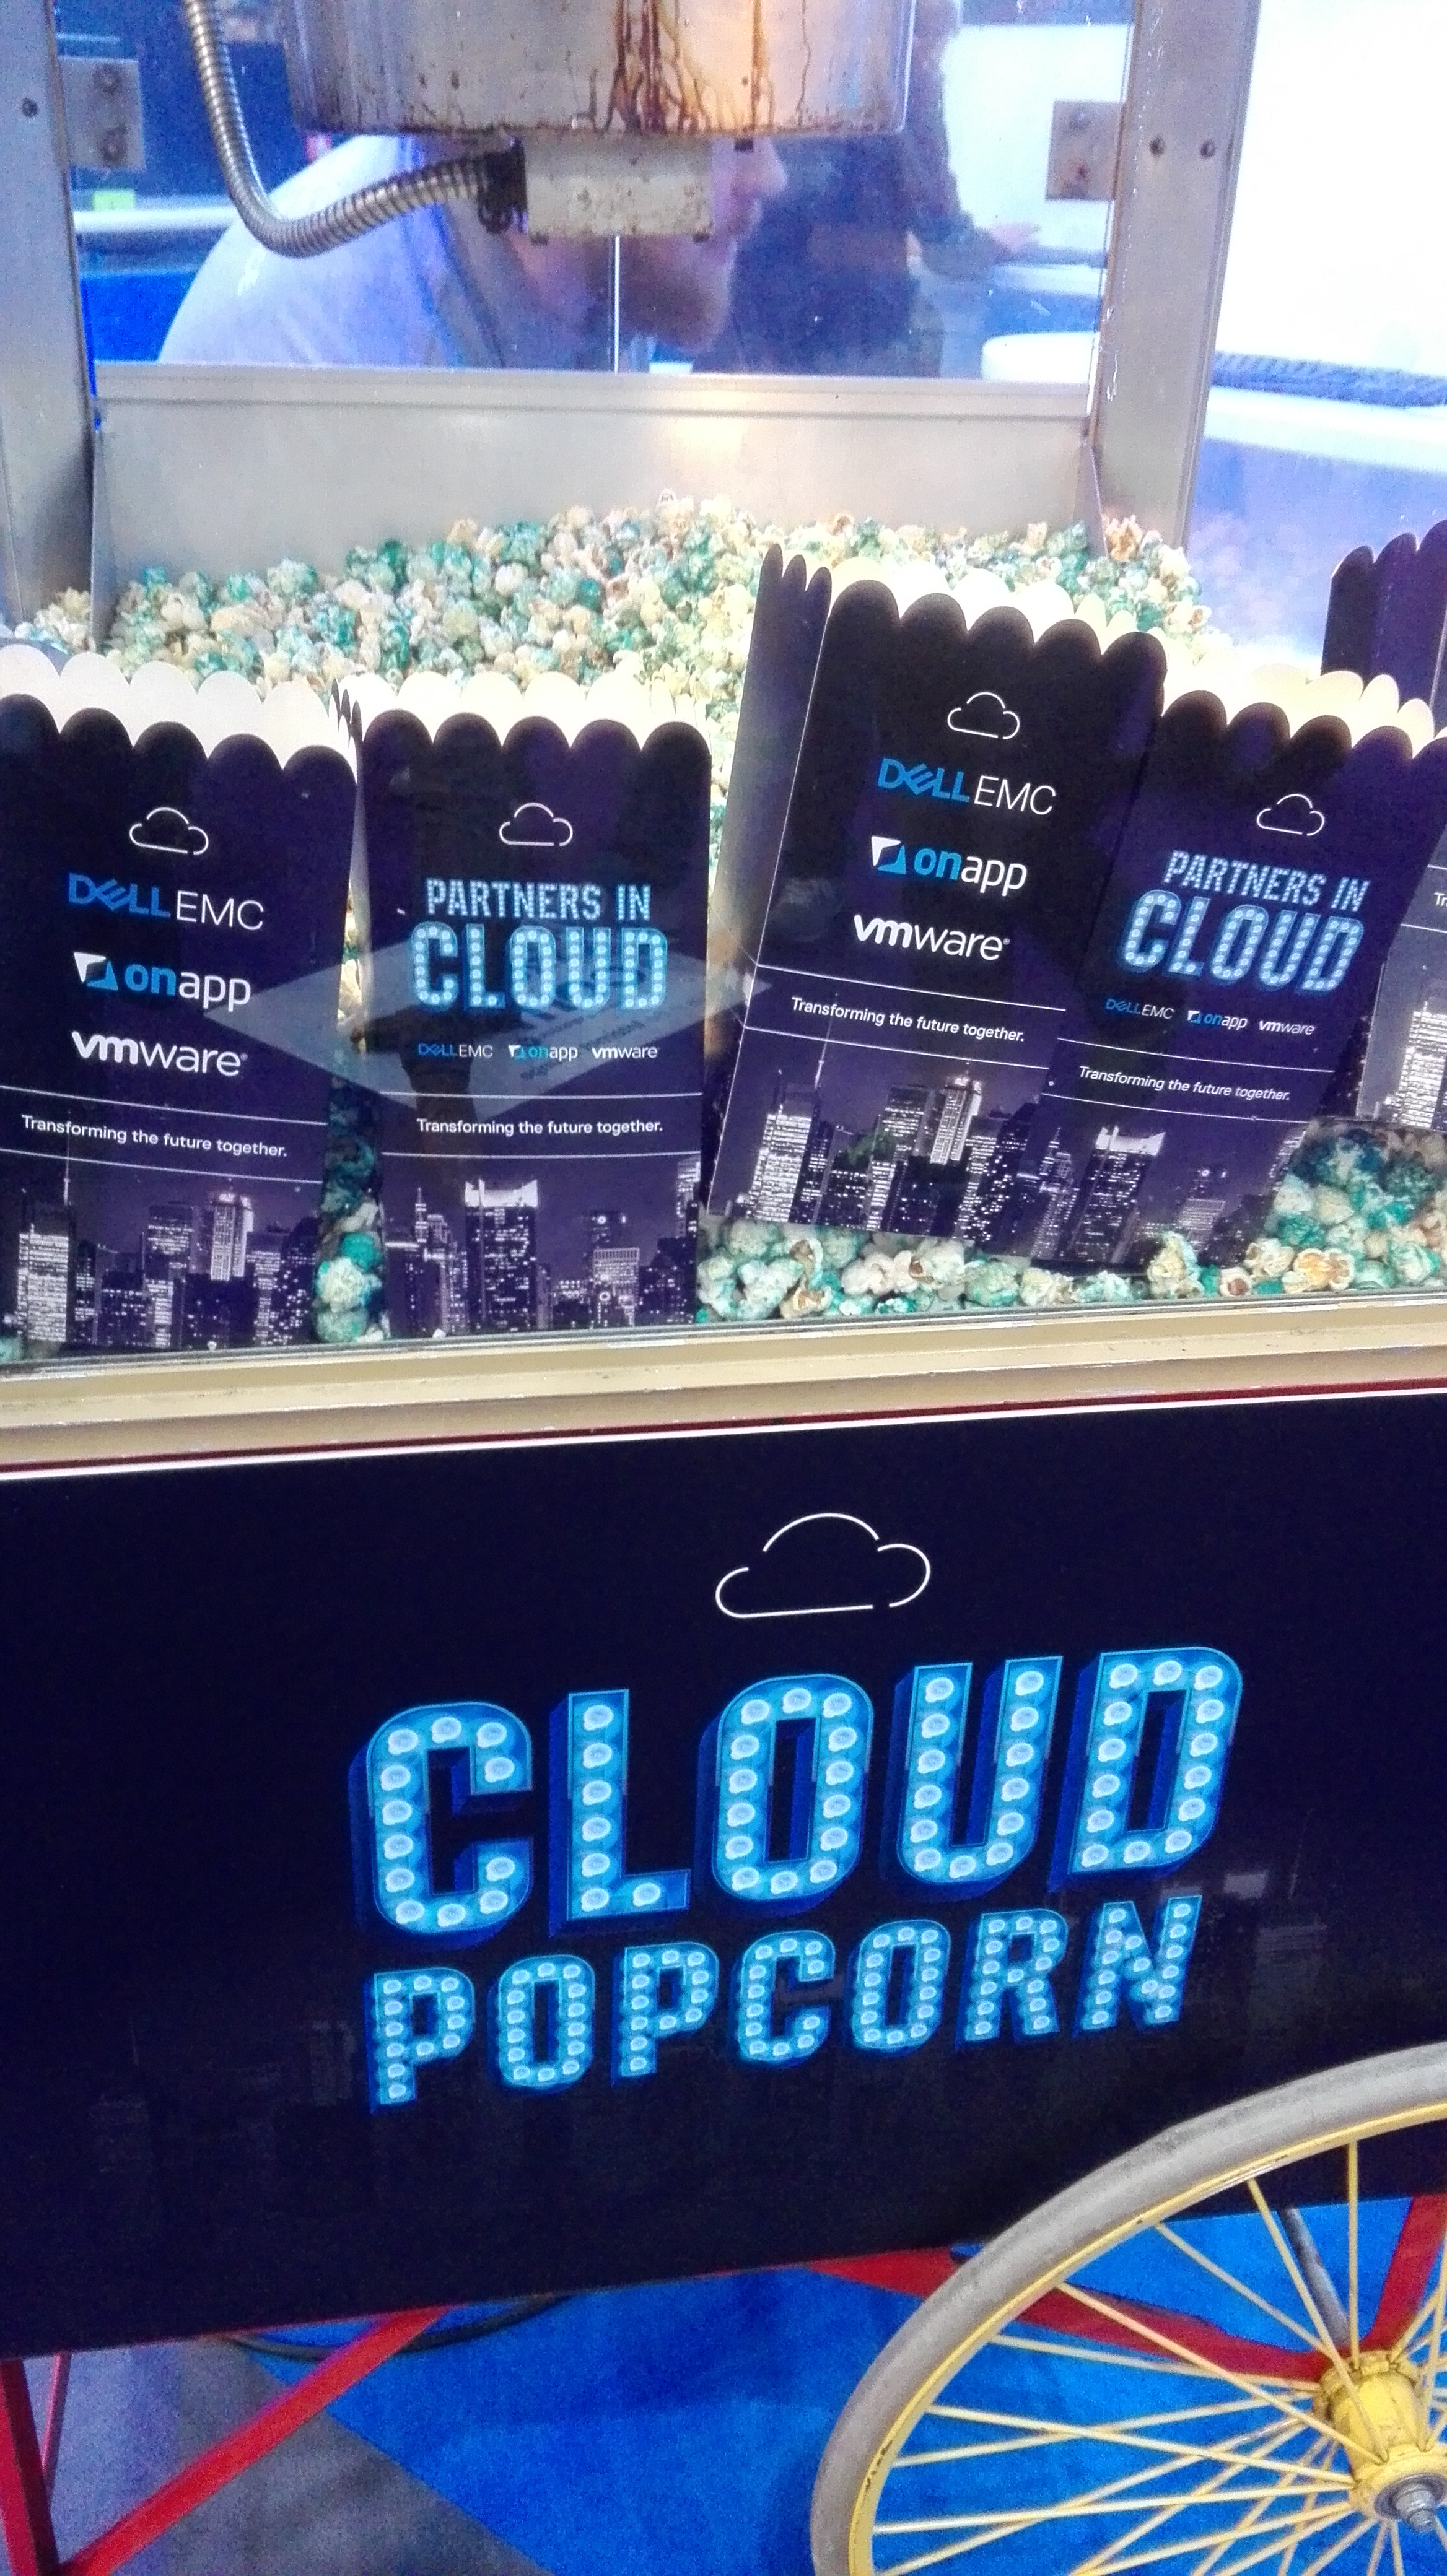 Cloudfest Dell